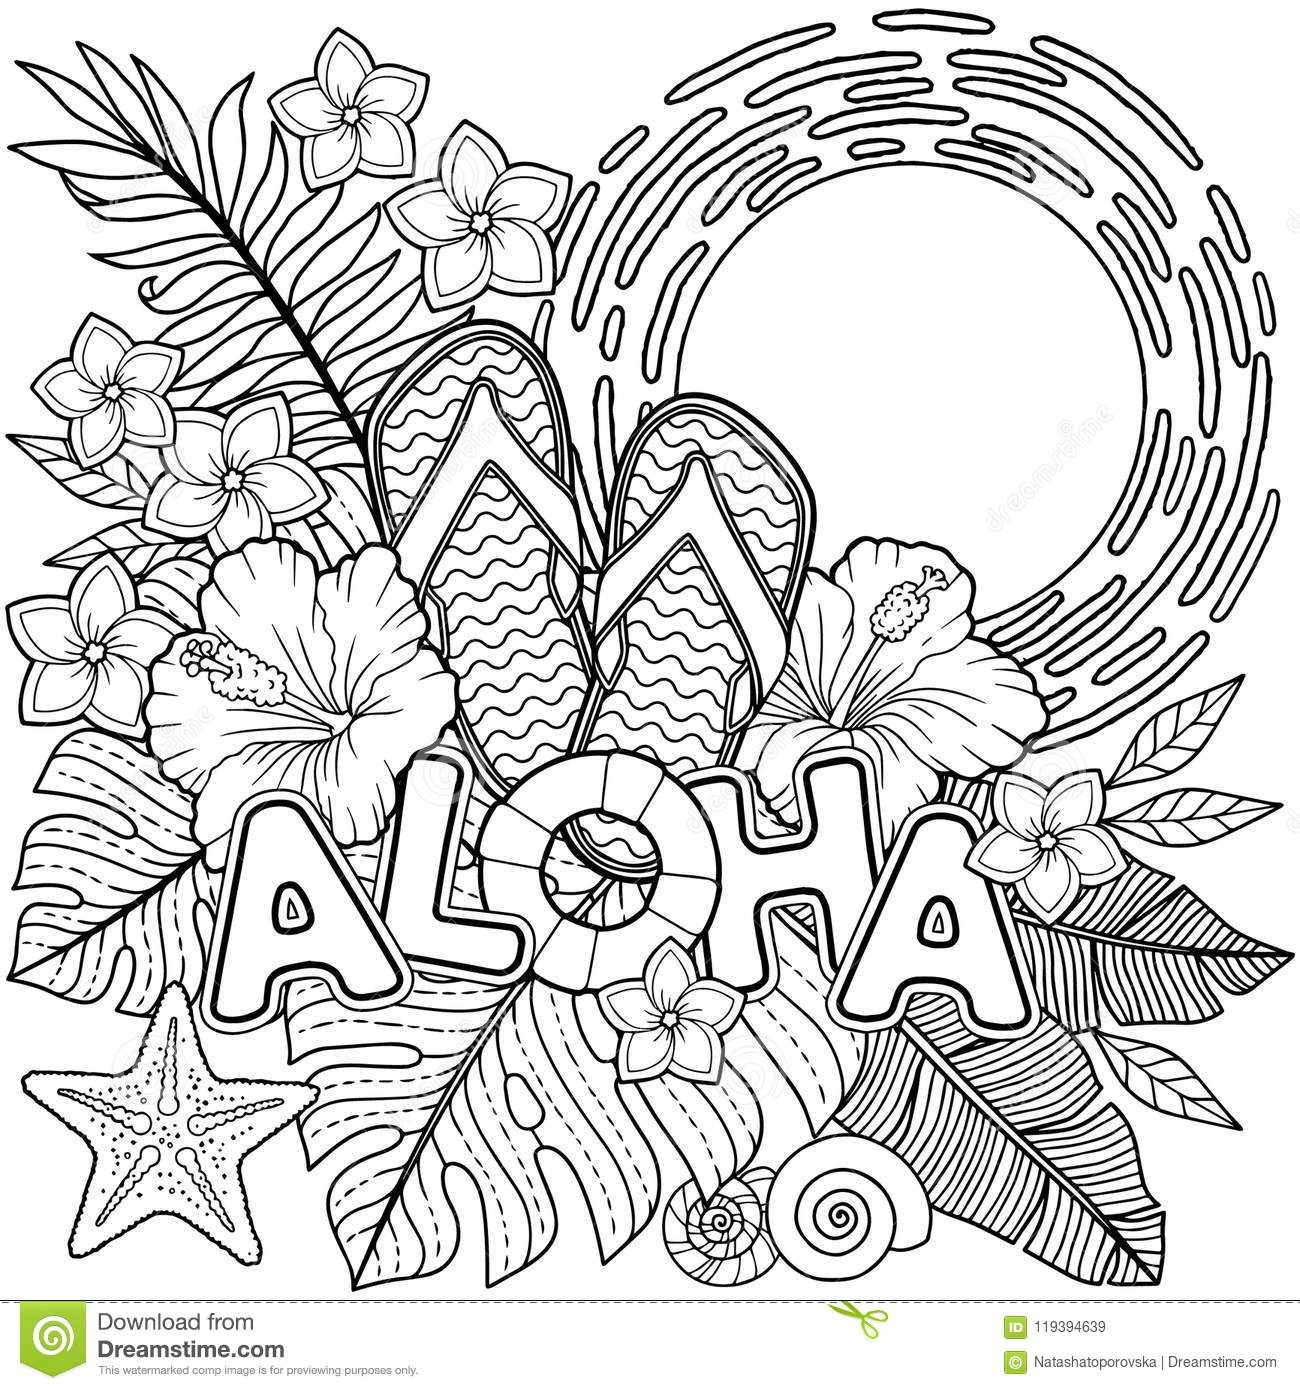 Coloring Book For Adults Toucan Among Tropical Leaves And Flowers Stock Vector Illustration Of Coloring Background 119394639 Trees & leaves coloring pages. https www dreamstime com coloring book adults toucan tropical leaves flowers coloring book adults toucan tropical leaves image119394639